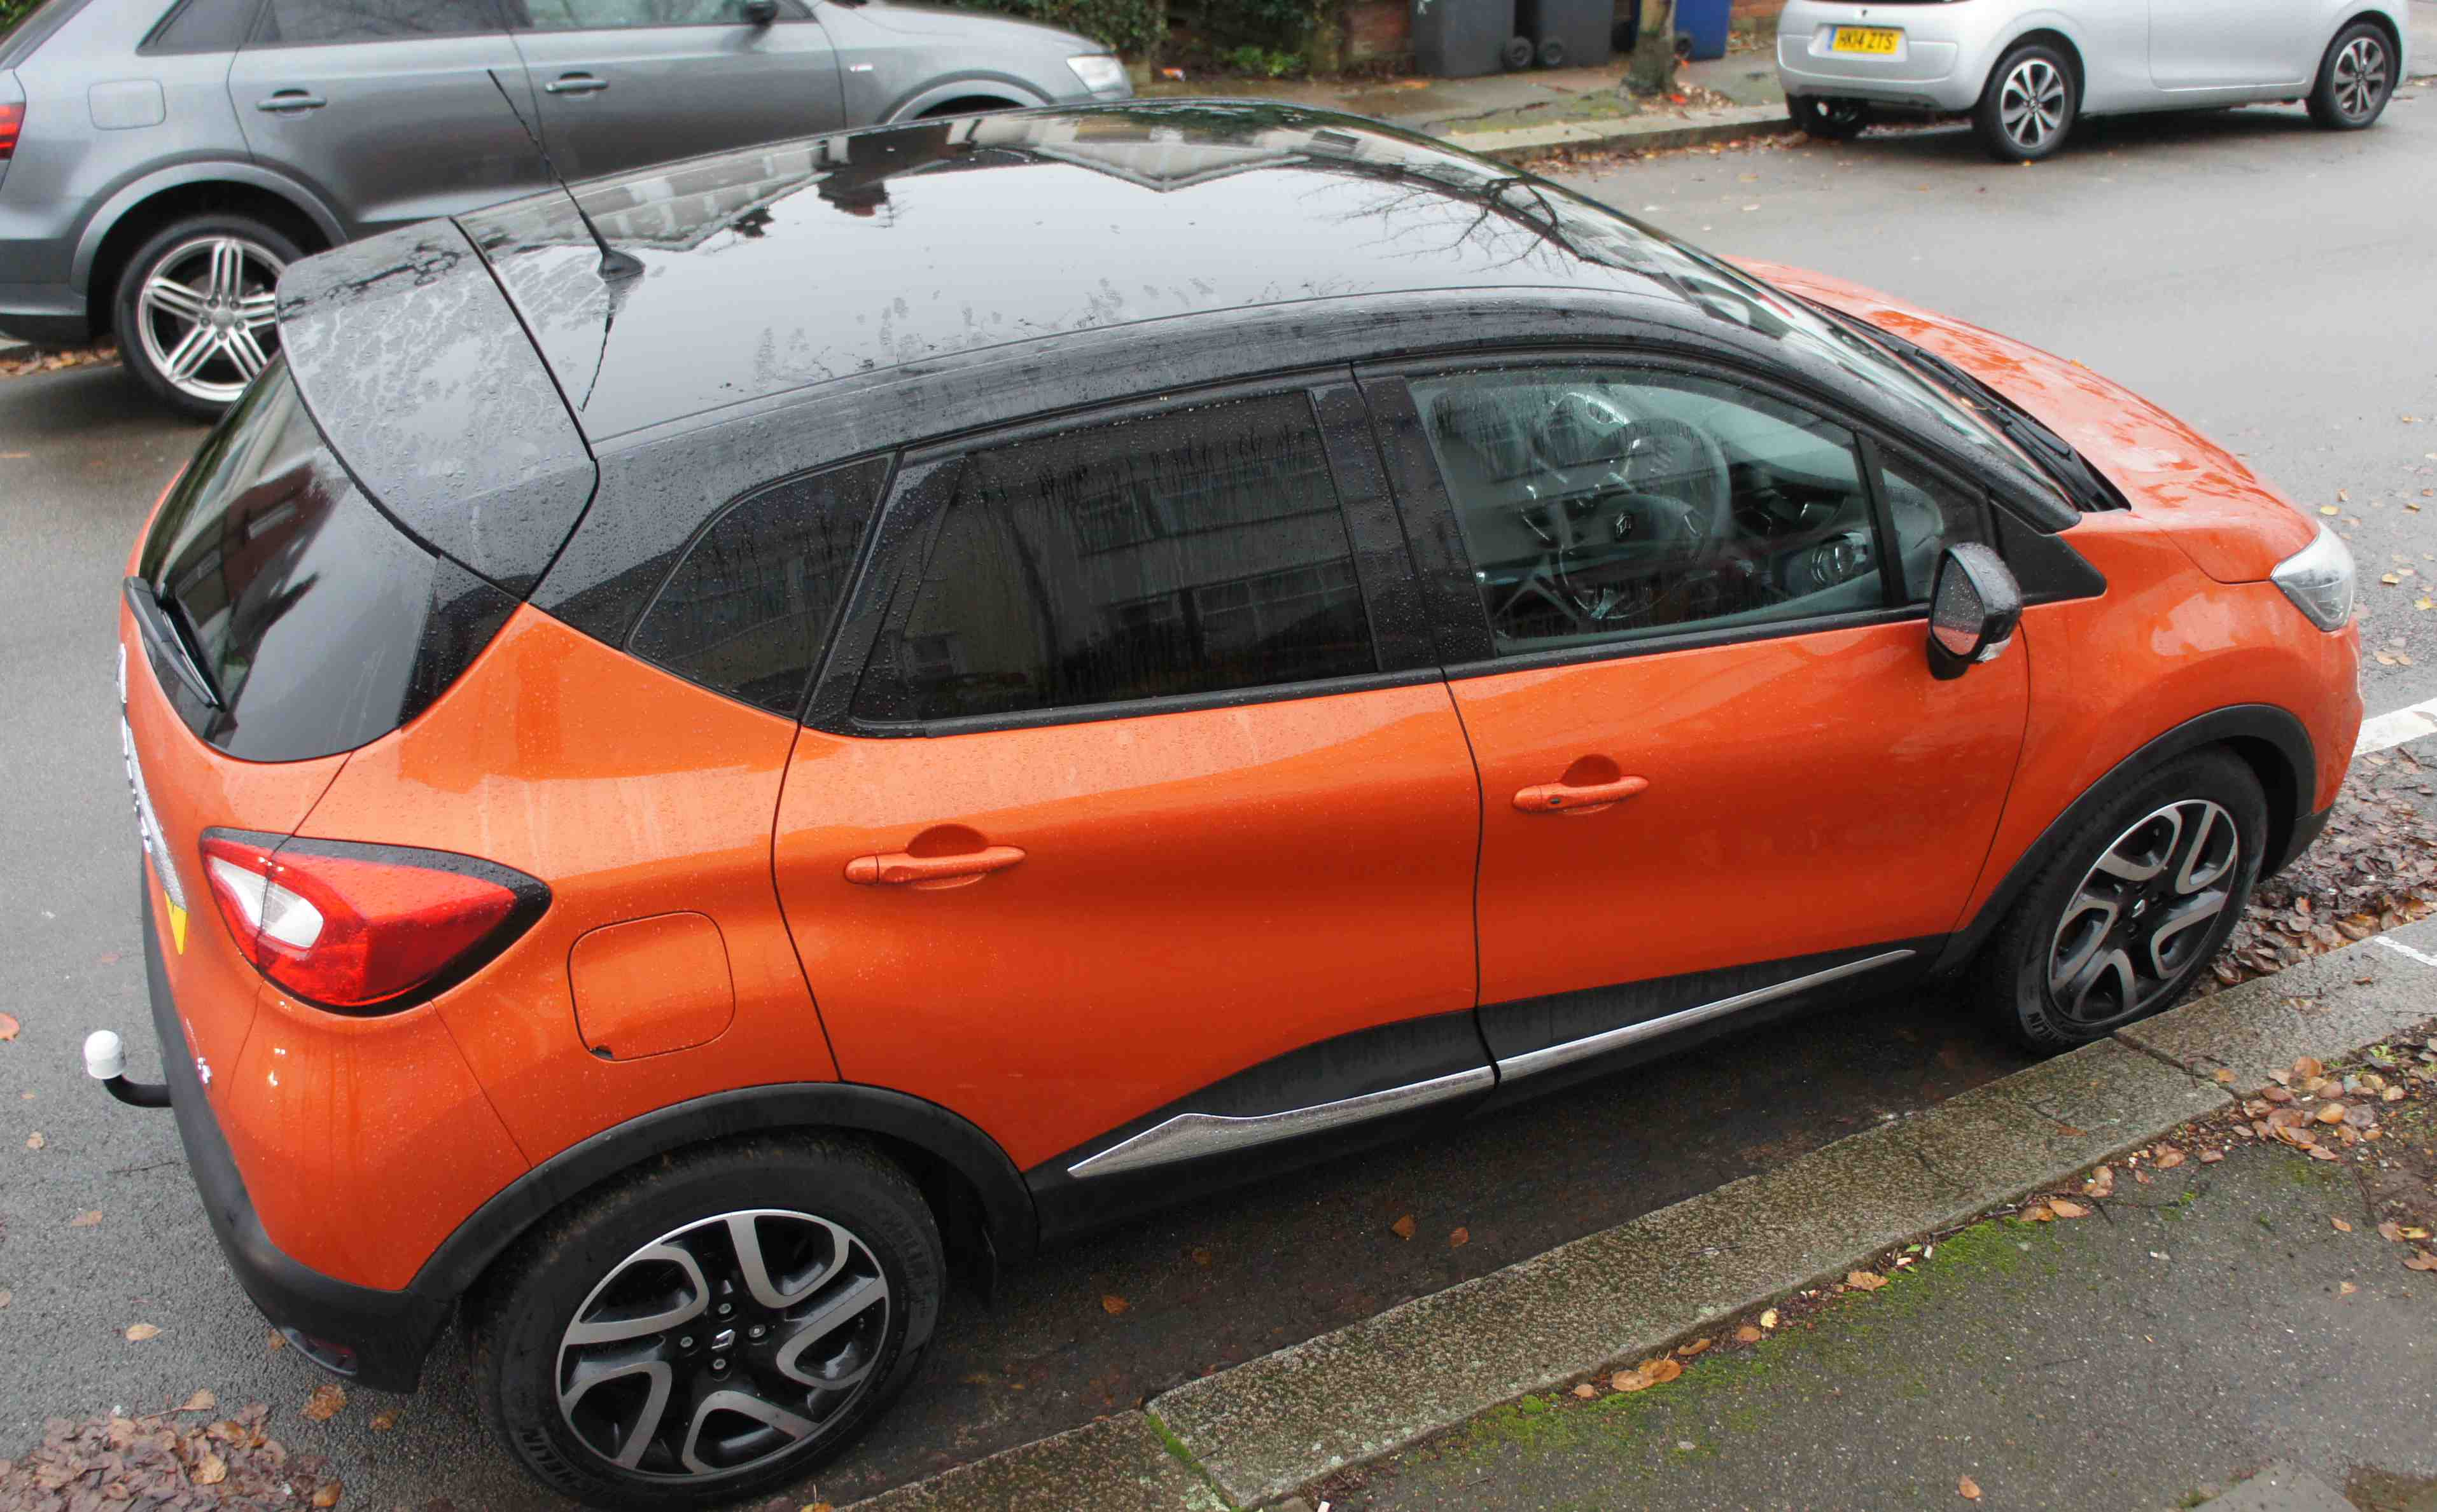 Renault Captur: Nobody who knows about cars will buy this